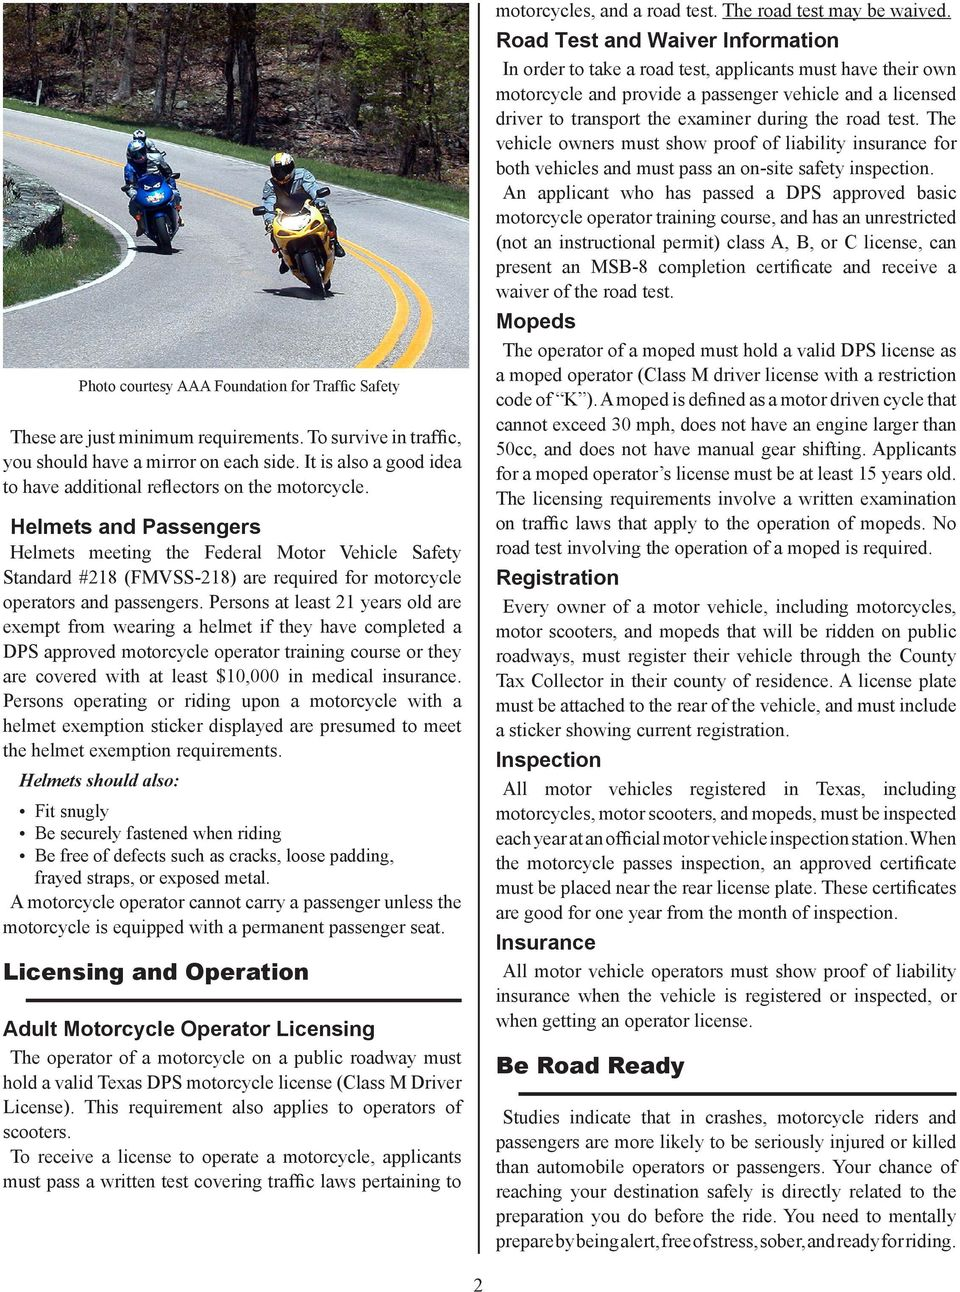 Helmets and Passengers Helmets meeting the Federal Motor Vehicle Safety Standard #218 (FMVSS-218) are required for motorcycle operators and passengers.